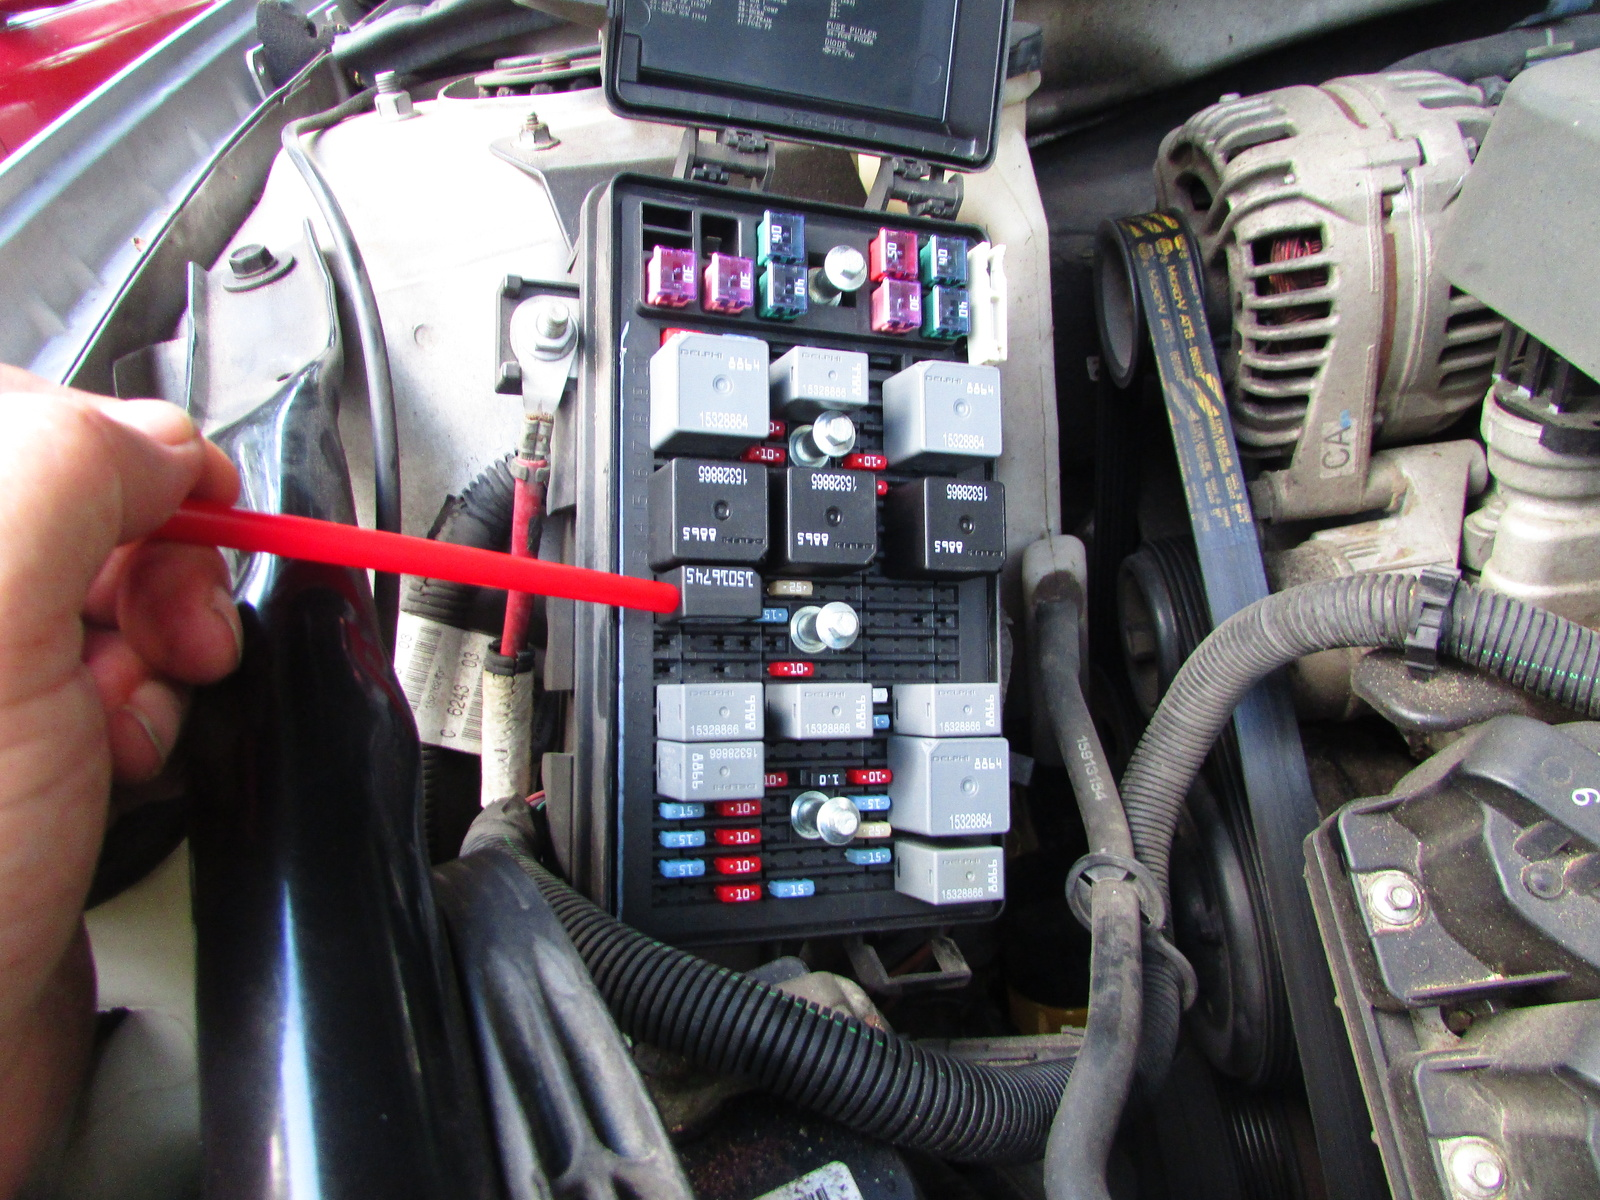 Where Is Fuse Box On 99 Pontiac Grand Prix - Wiring Diagram Data on 2005 pontiac grand am fuse box, 2010 pontiac g6 fuse box, 2005 pontiac g6 fuse box, 2008 pontiac grand prix fuse box, 2007 pontiac grand prix fuse box, 2003 chrysler pt cruiser fuse box, 1995 pontiac grand prix fuse box, 2004 pontiac bonneville fuse box, 1999 pontiac bonneville fuse box, 2001 pontiac bonneville fuse box, 2004 pontiac montana fuse box, 2002 pontiac grand prix fuse box, 1995 pontiac bonneville fuse box, 2001 pontiac grand prix fuse box, 1999 pontiac sunfire fuse box, 1998 pontiac bonneville fuse box, 2003 ford contour fuse box, 2003 chevrolet cavalier fuse box, 2000 pontiac grand am fuse box, 2005 pontiac bonneville fuse box,